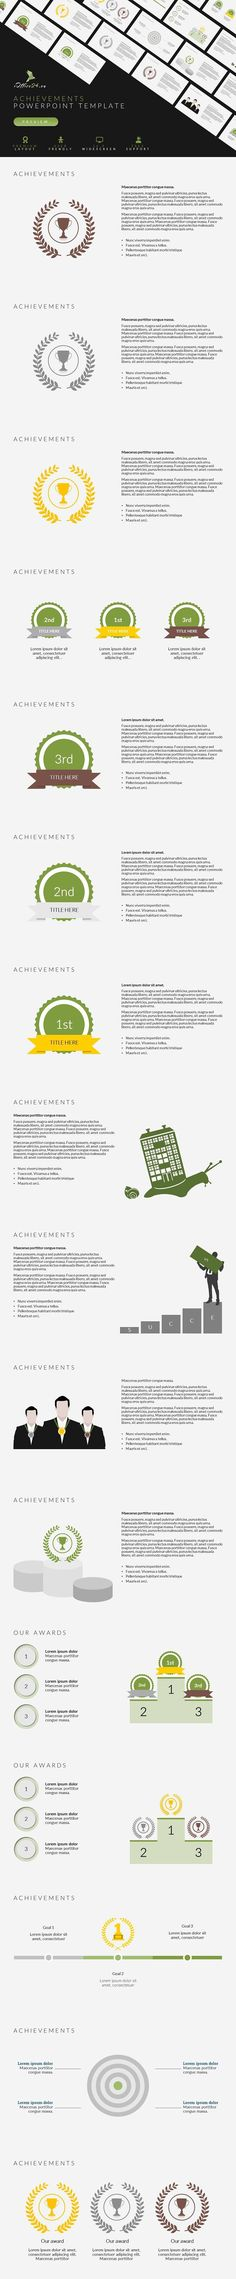 Professional Resume CV Infographic Elements Infographic - cover letter elements